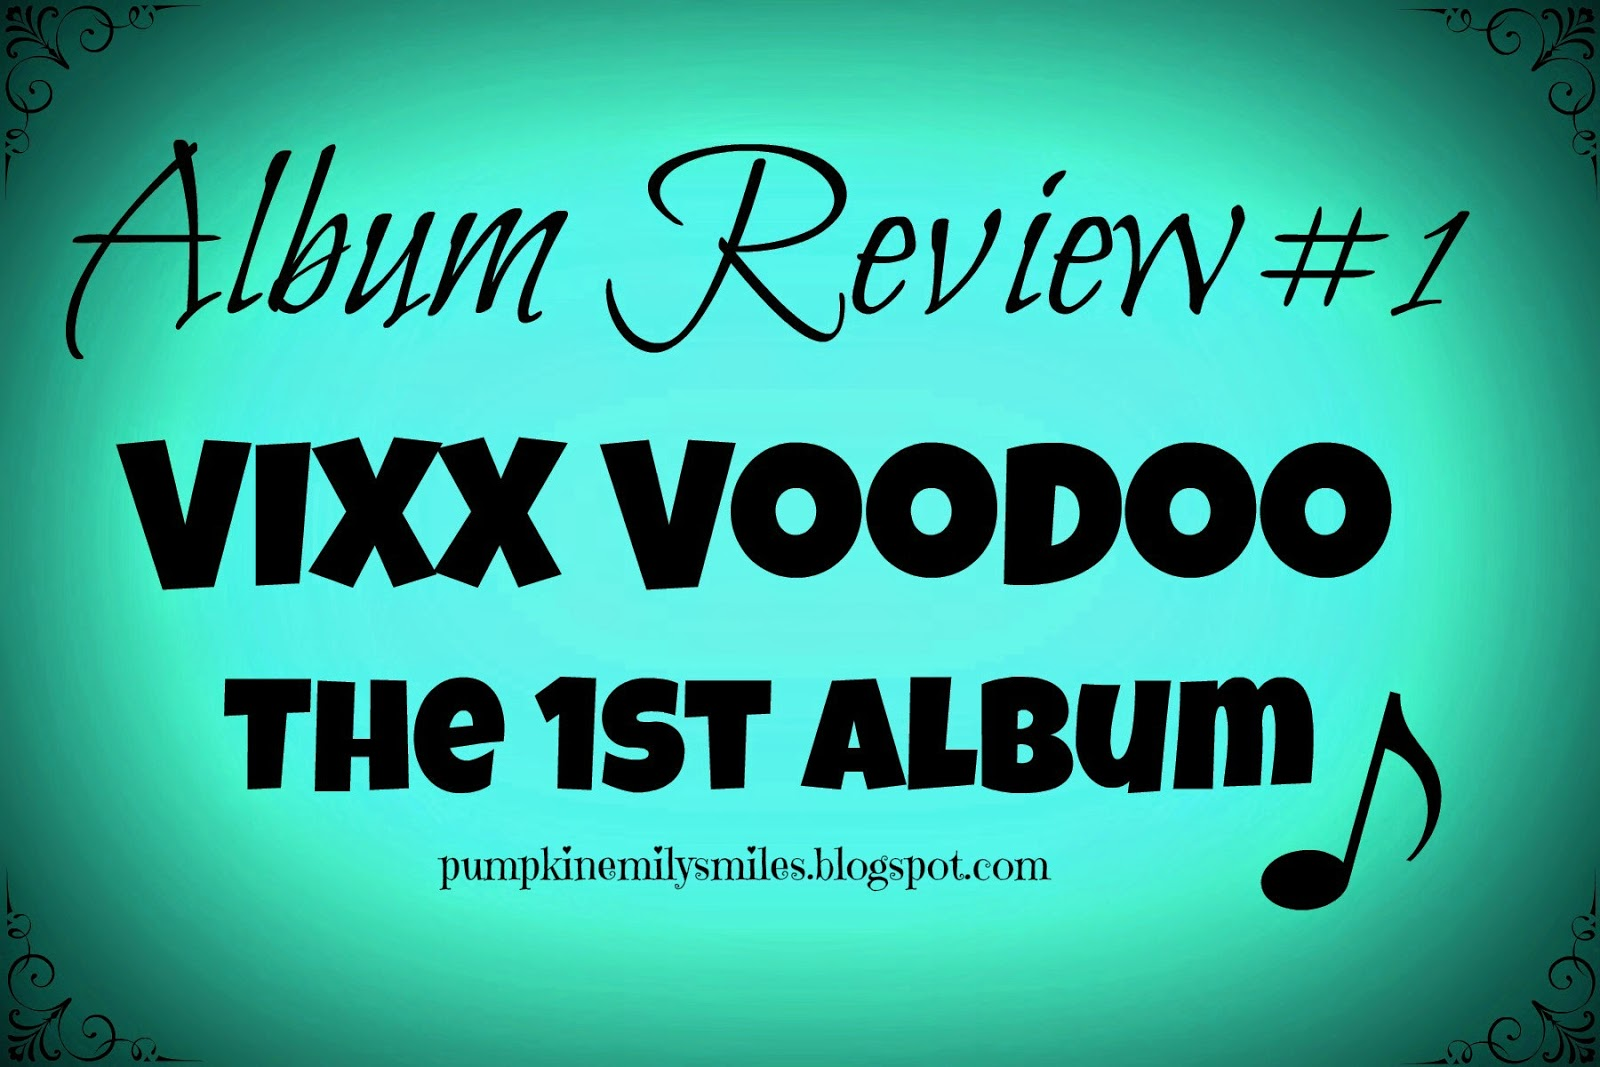 Album Review #1 VIXX Voodoo The First Album